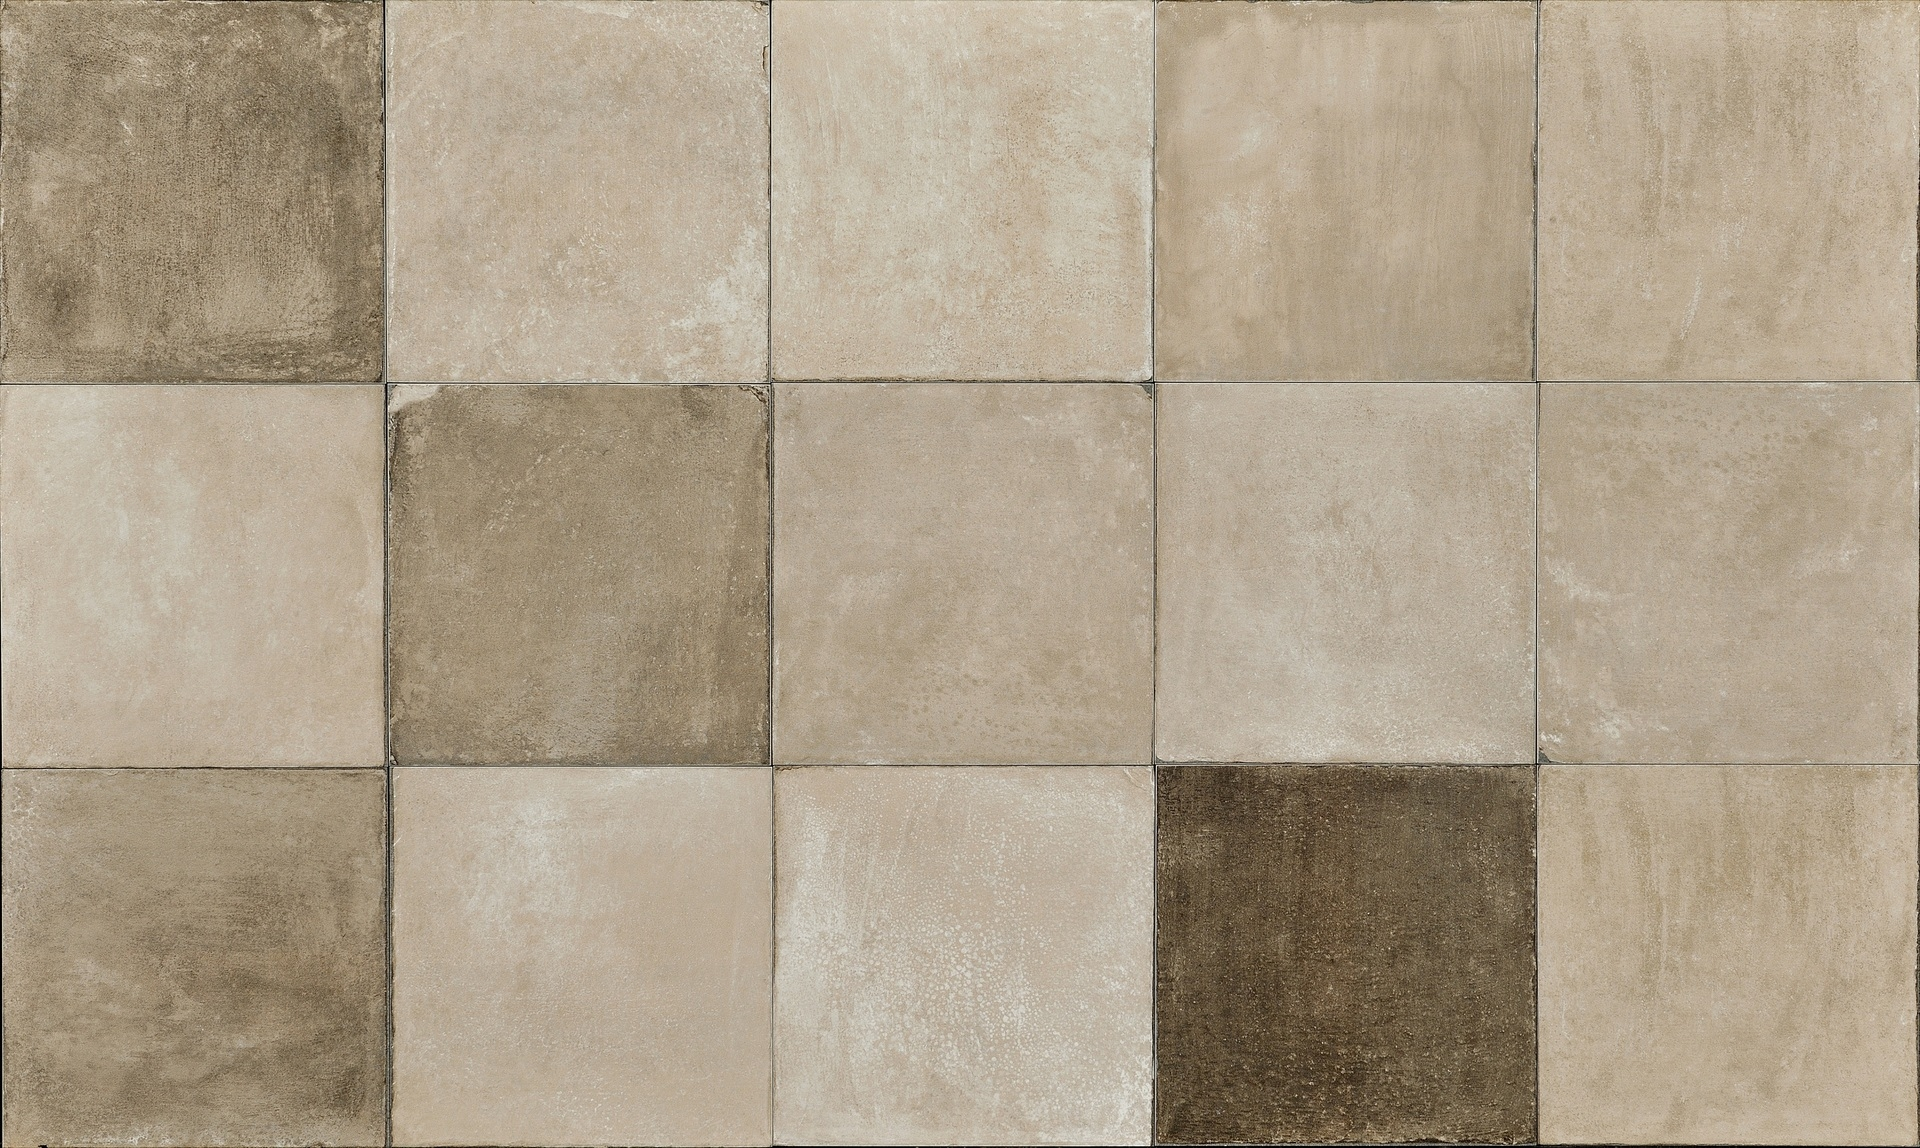 Argillae tile collection by Fioranese | TileScout